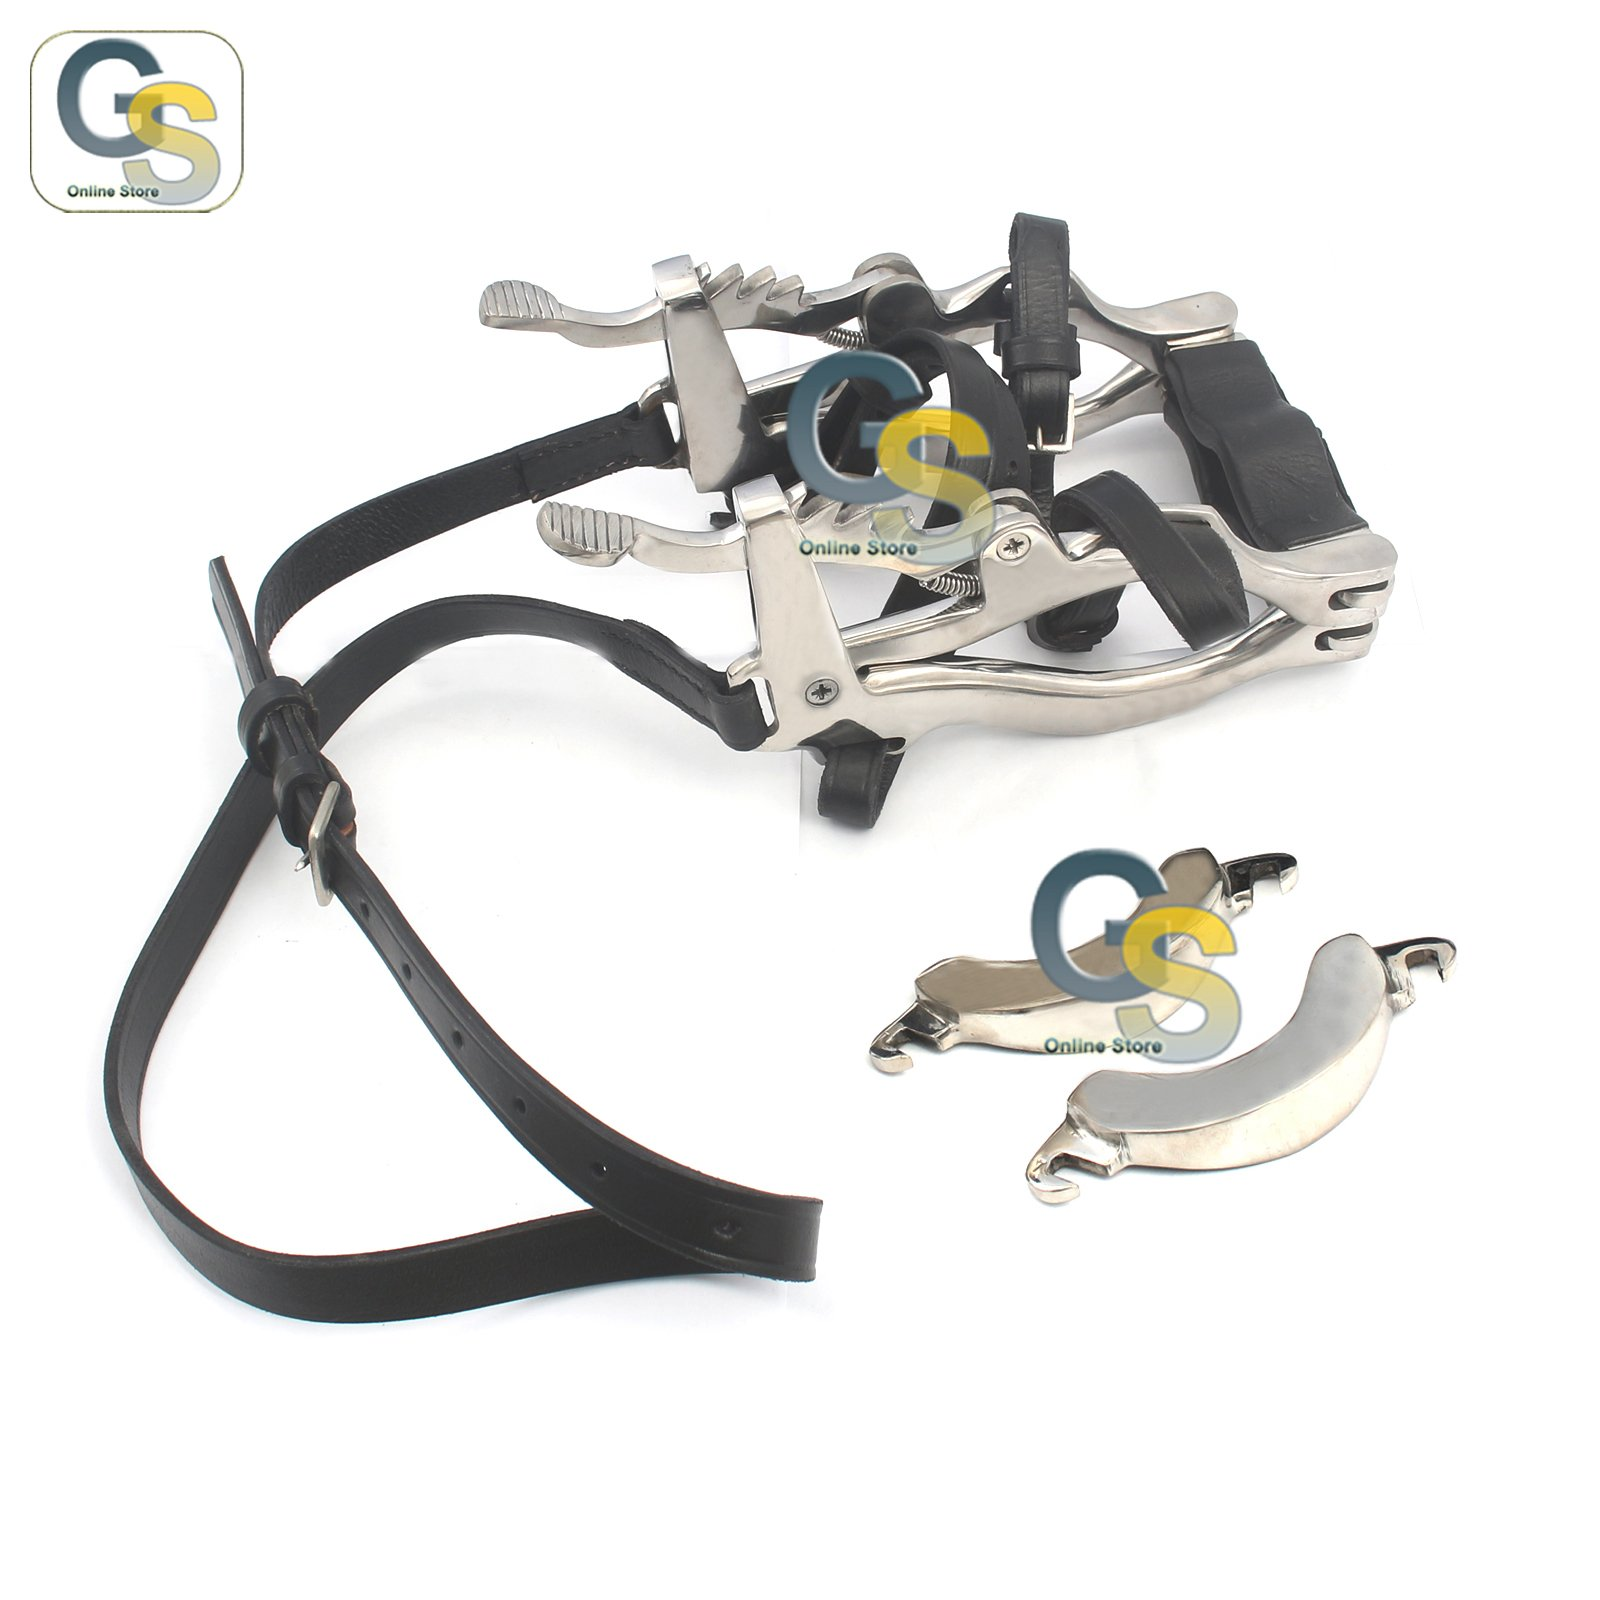 G.S HORSE MOUTH SPECULUM STAINLESS STEEL BEST QUALITY